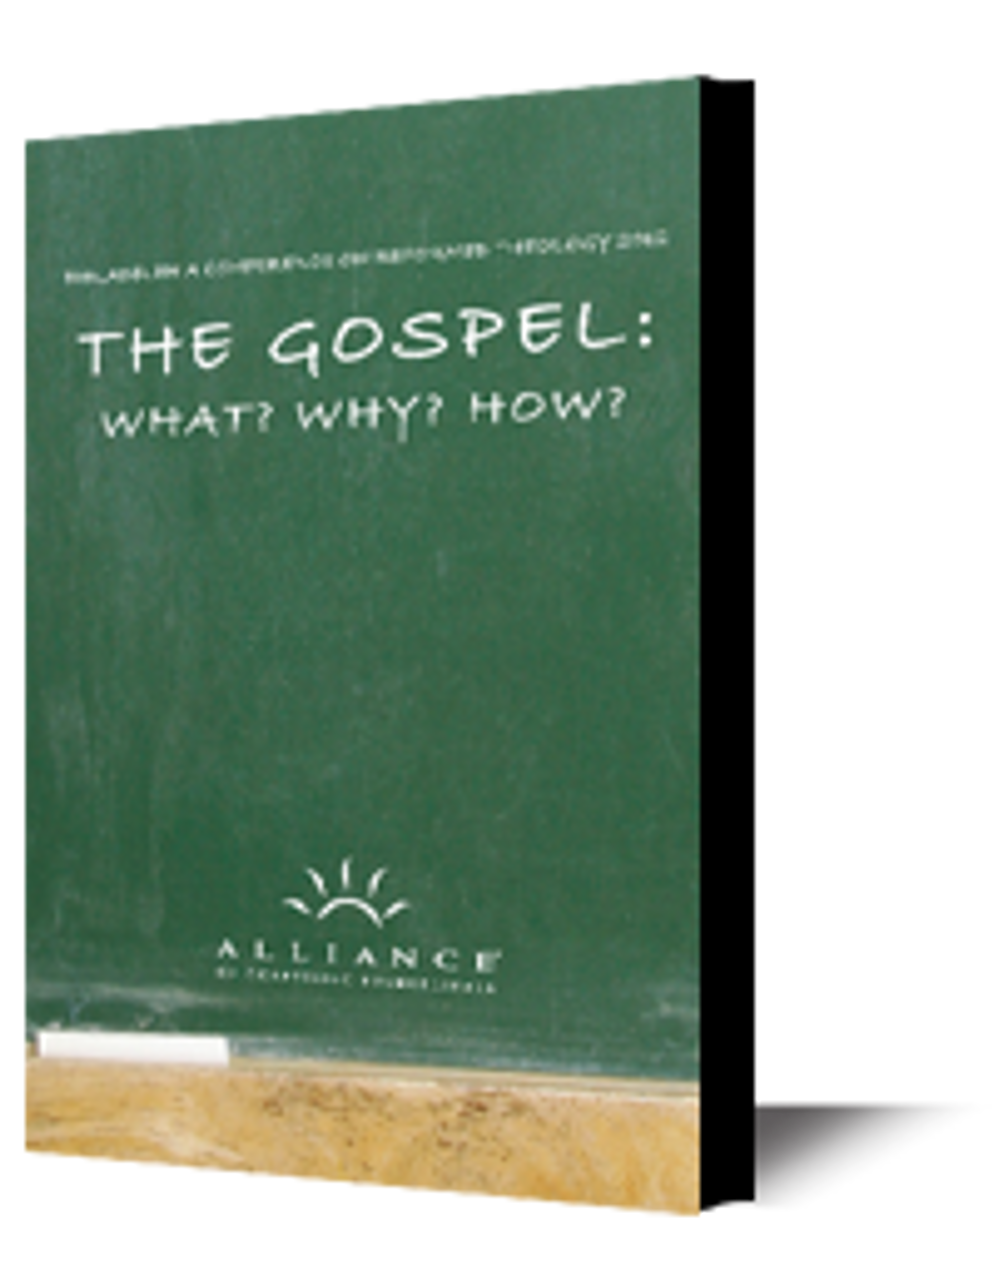 The Gospel: What? Why? How? PCRT 2012 Seminars (CD Set)